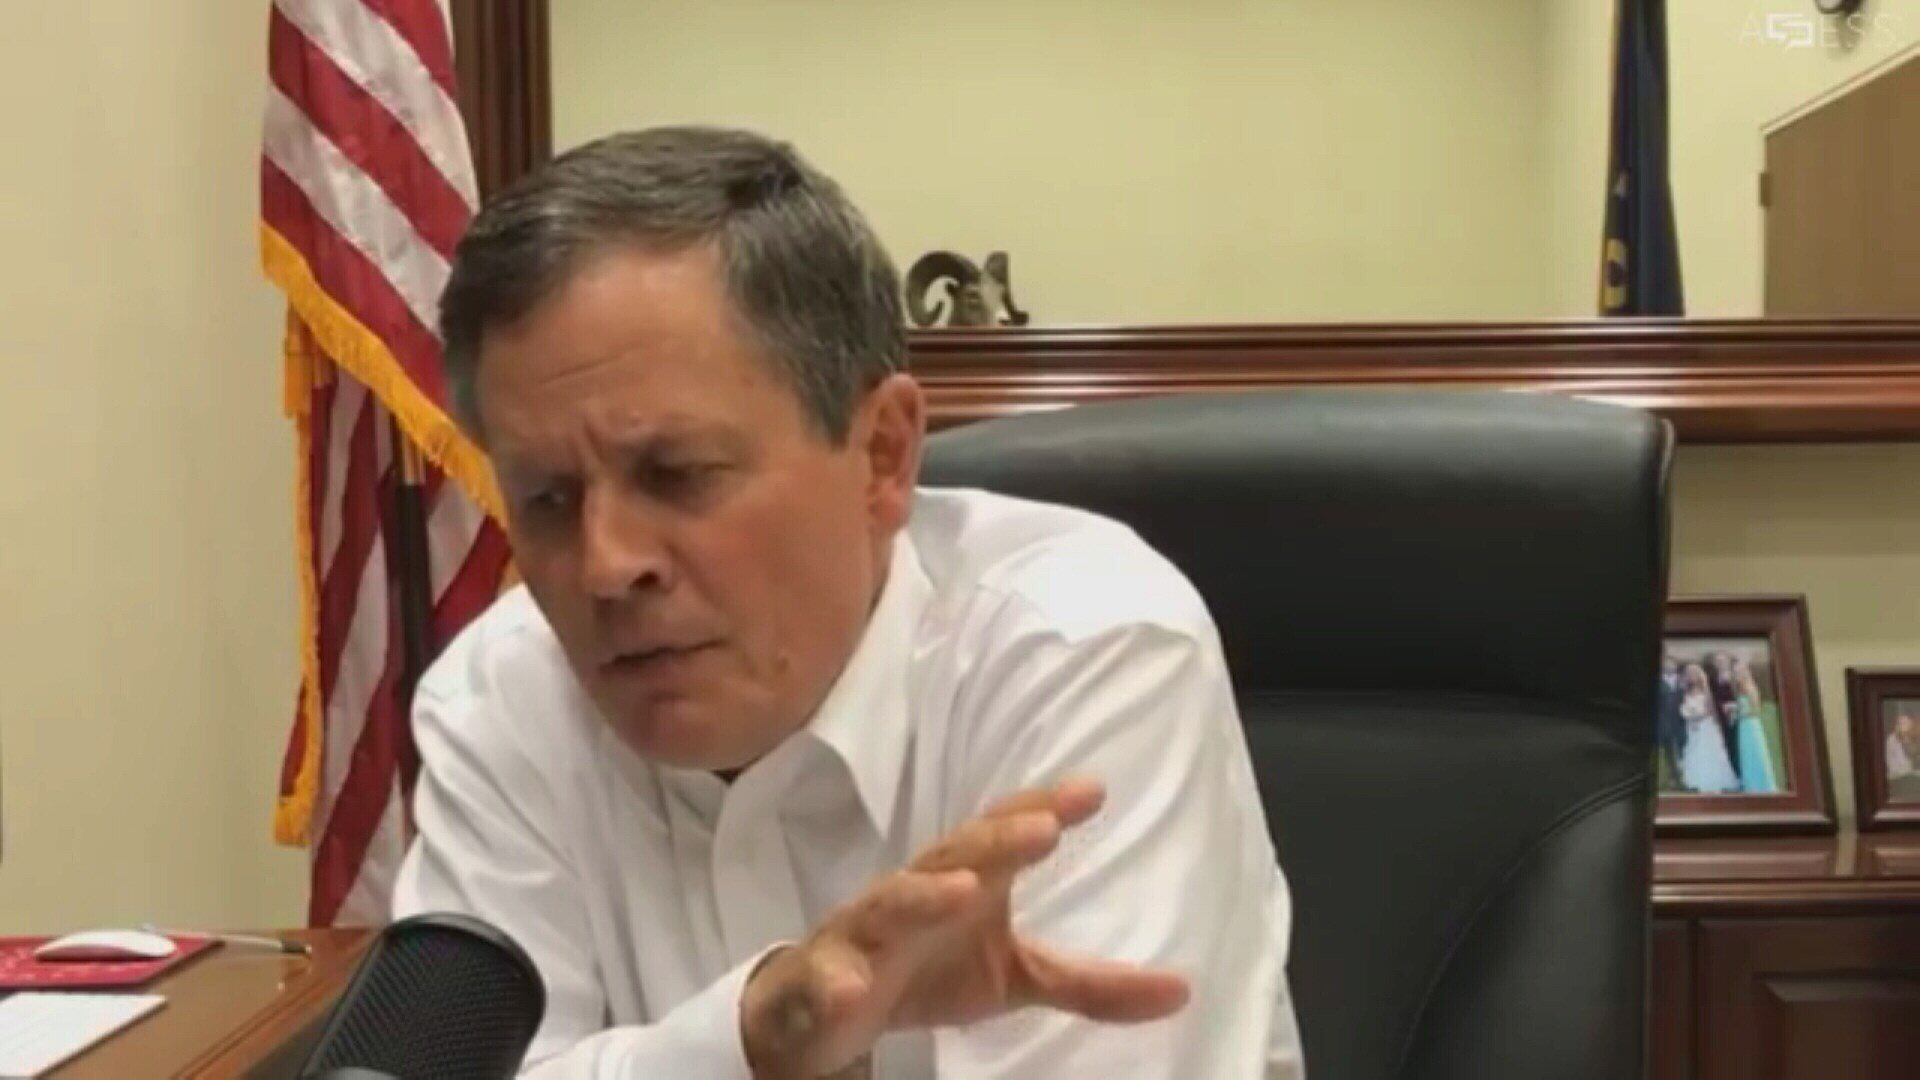 Sen. Steve Daines, (R-MT), focused on fires and forest management during a teletownhall meeting on Wednesday night.